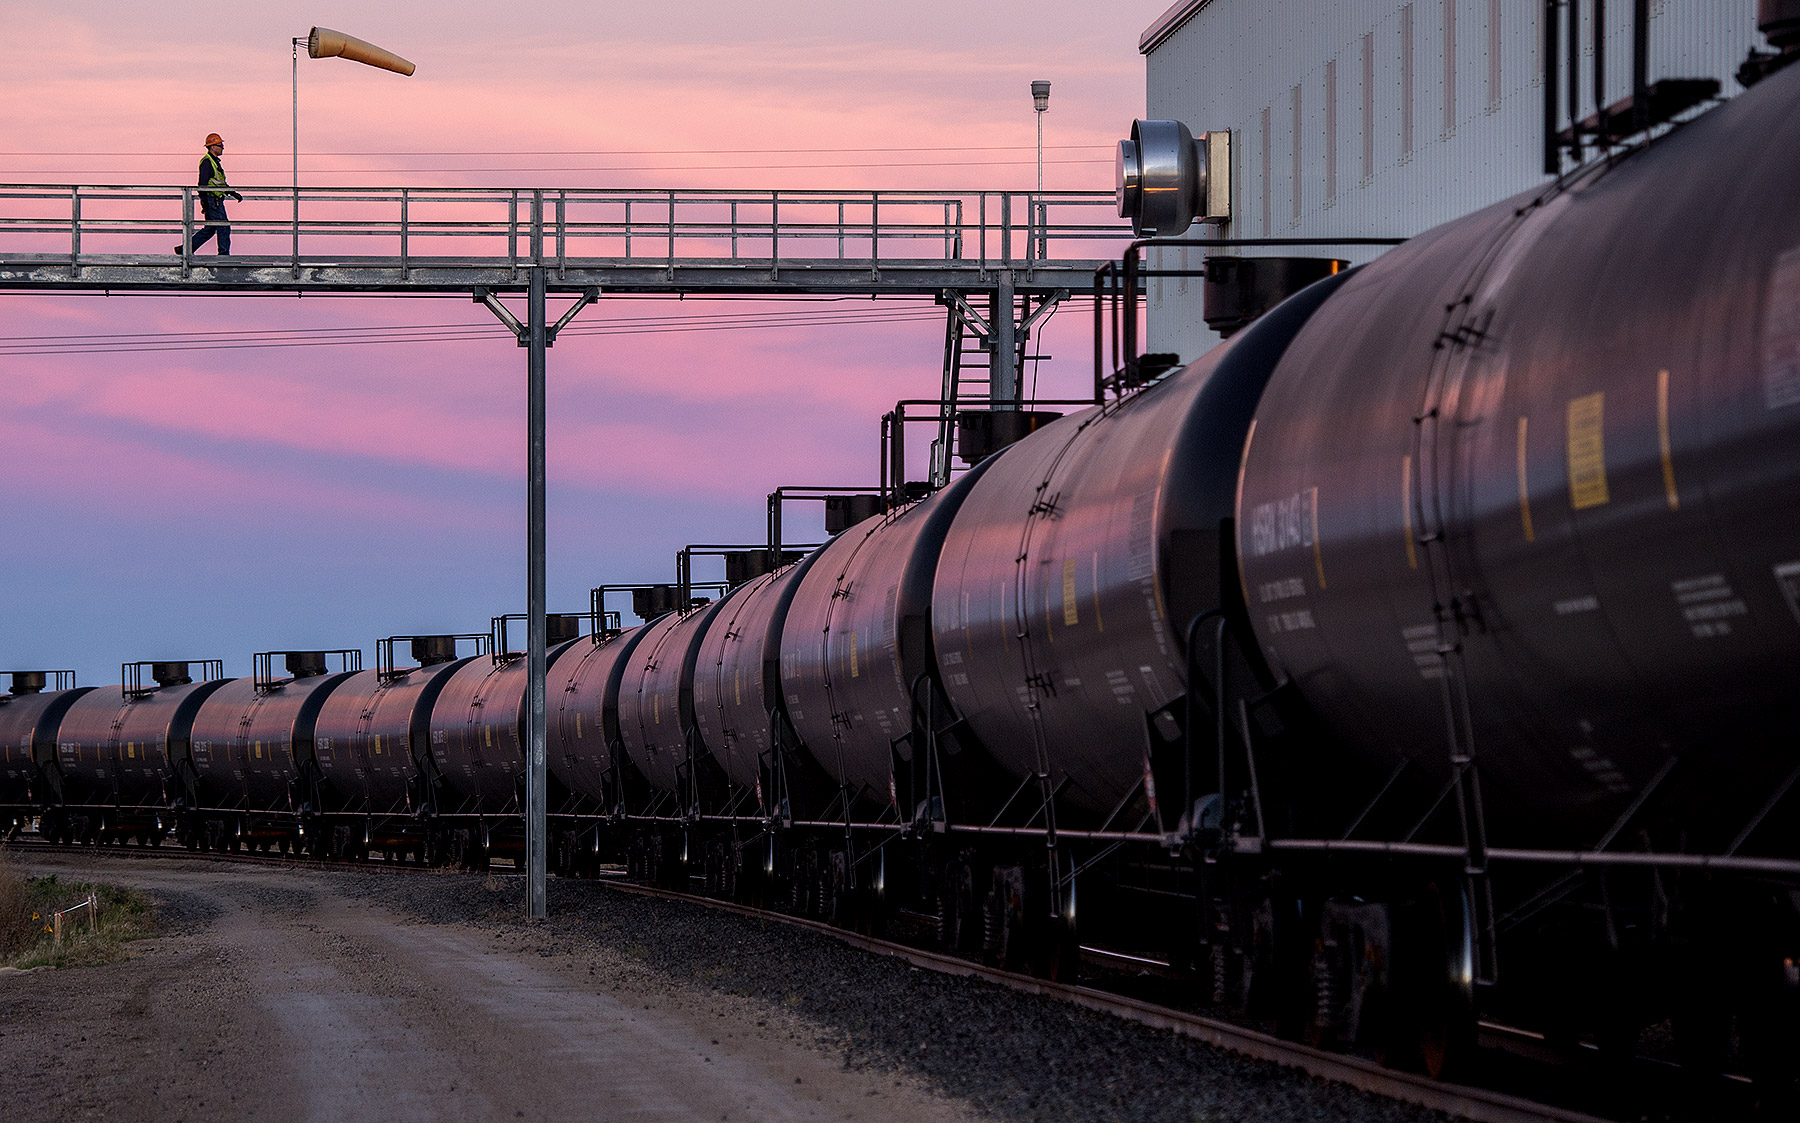 Crude Railcars at Sunrise